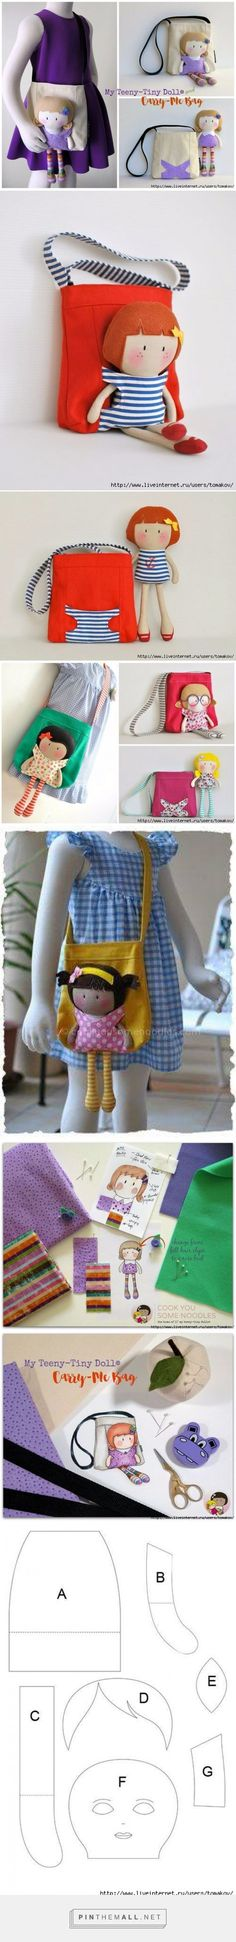 My tiny doll in hand bag